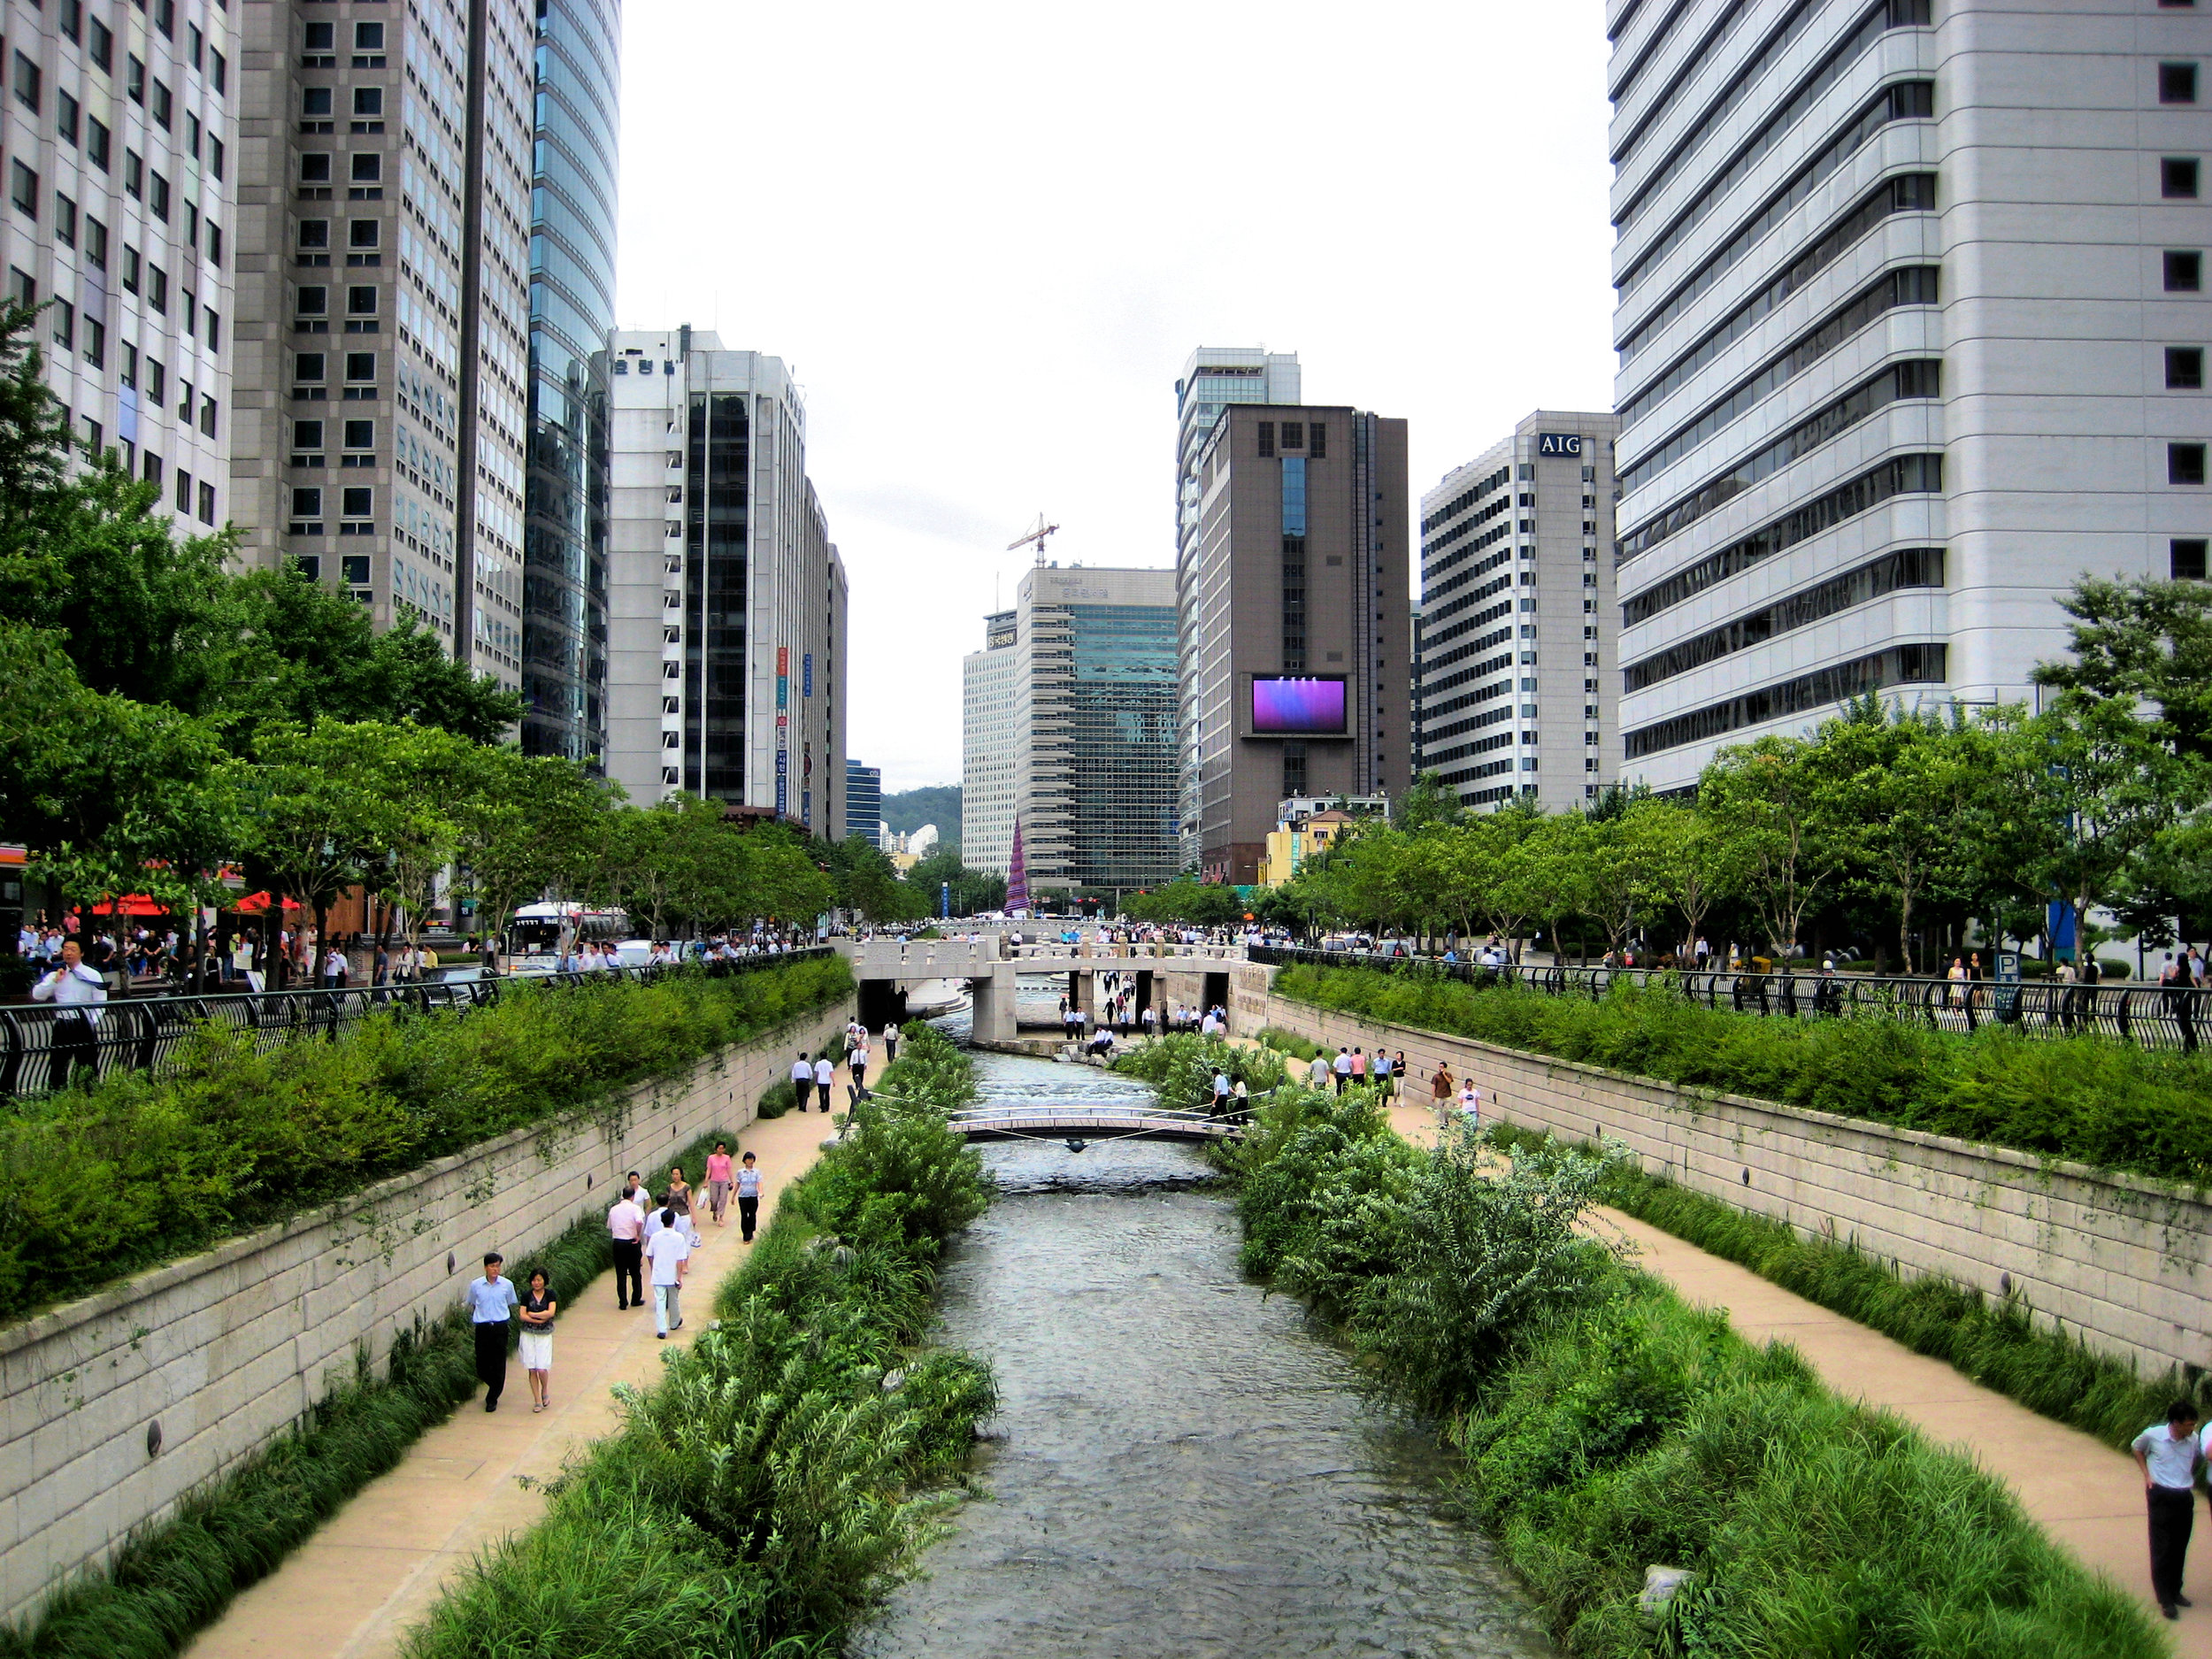 Urban re-connection through the reinterpretation of infrastructure in Seoul.  Cheonggyecheon stream. Author. Francisco Anzola. Transferred from Flickr via Flickr2commons. Available in Wikimedia Commons. 15 April 2014. Seoul, S. Korea. Registered under Creative Commons 2.0 License.